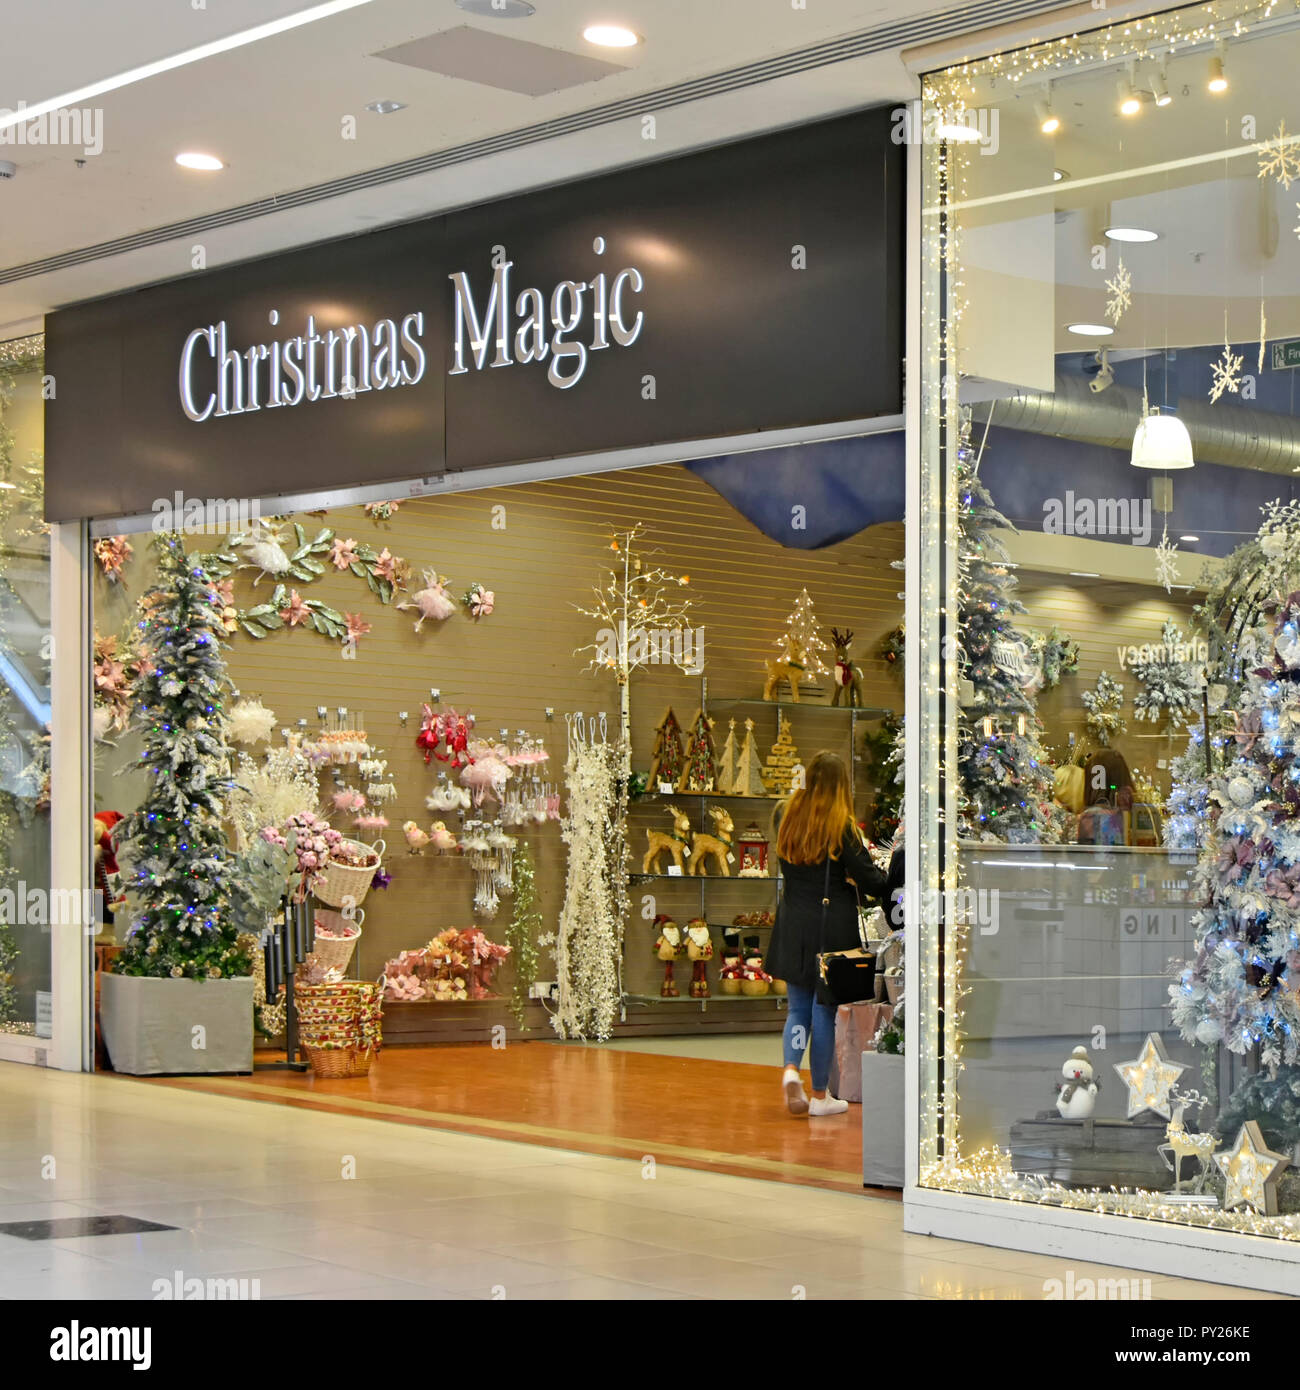 Christmas Business Decorations.Christmas Magic Store Decorations Lights Trees In Uk Pop